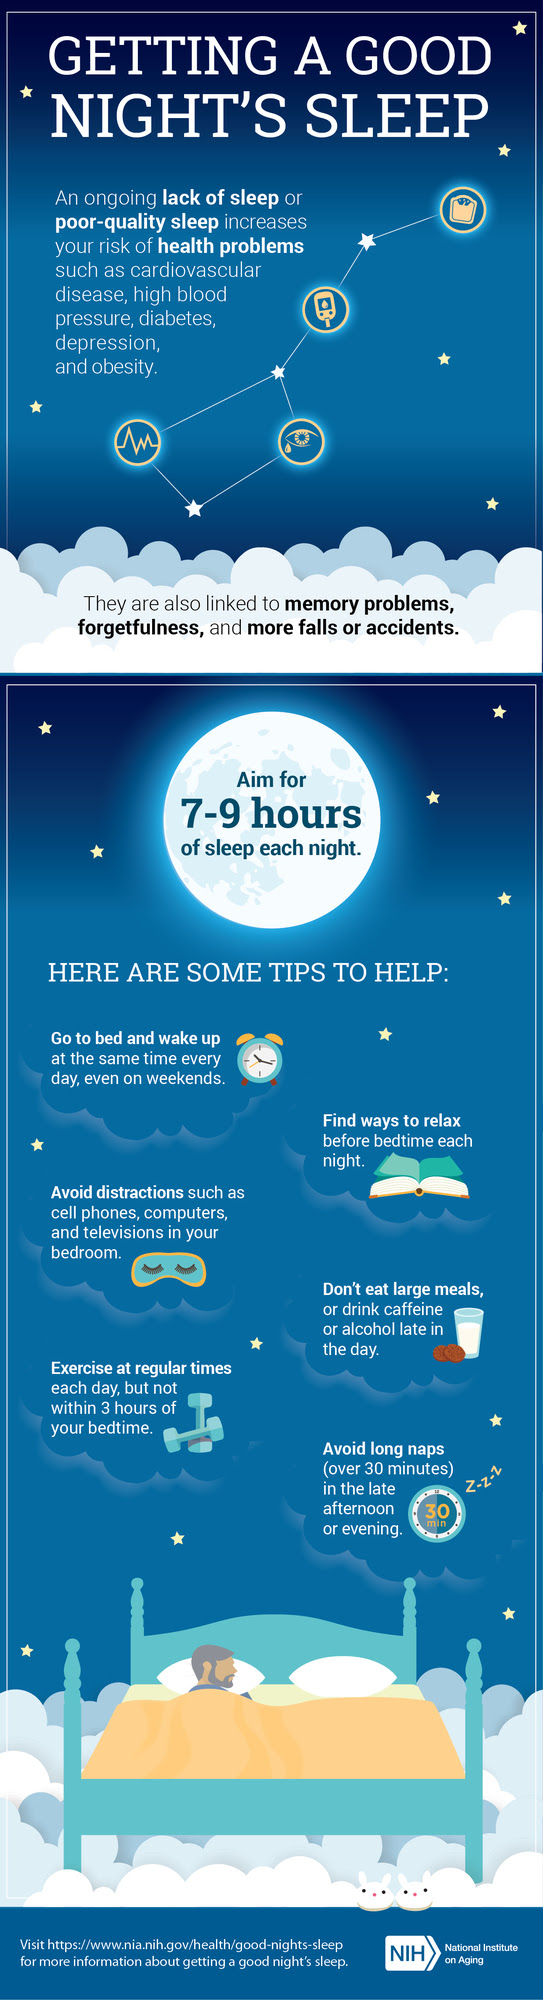 Infographic about getting a good night's sleep. Follow link for full description